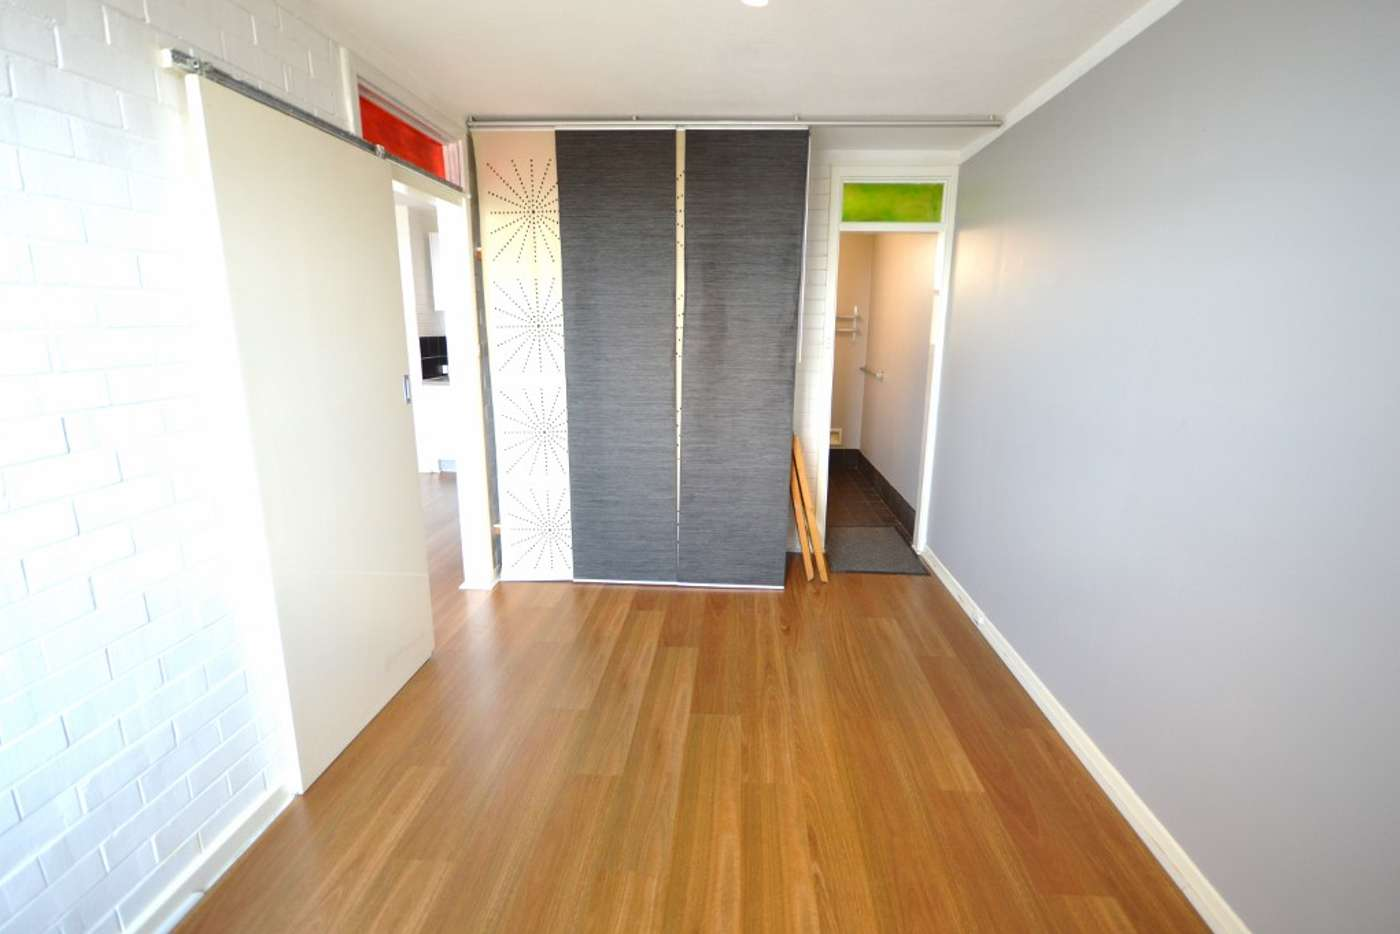 Sixth view of Homely apartment listing, 87/227 Vincent Street, West Perth WA 6005